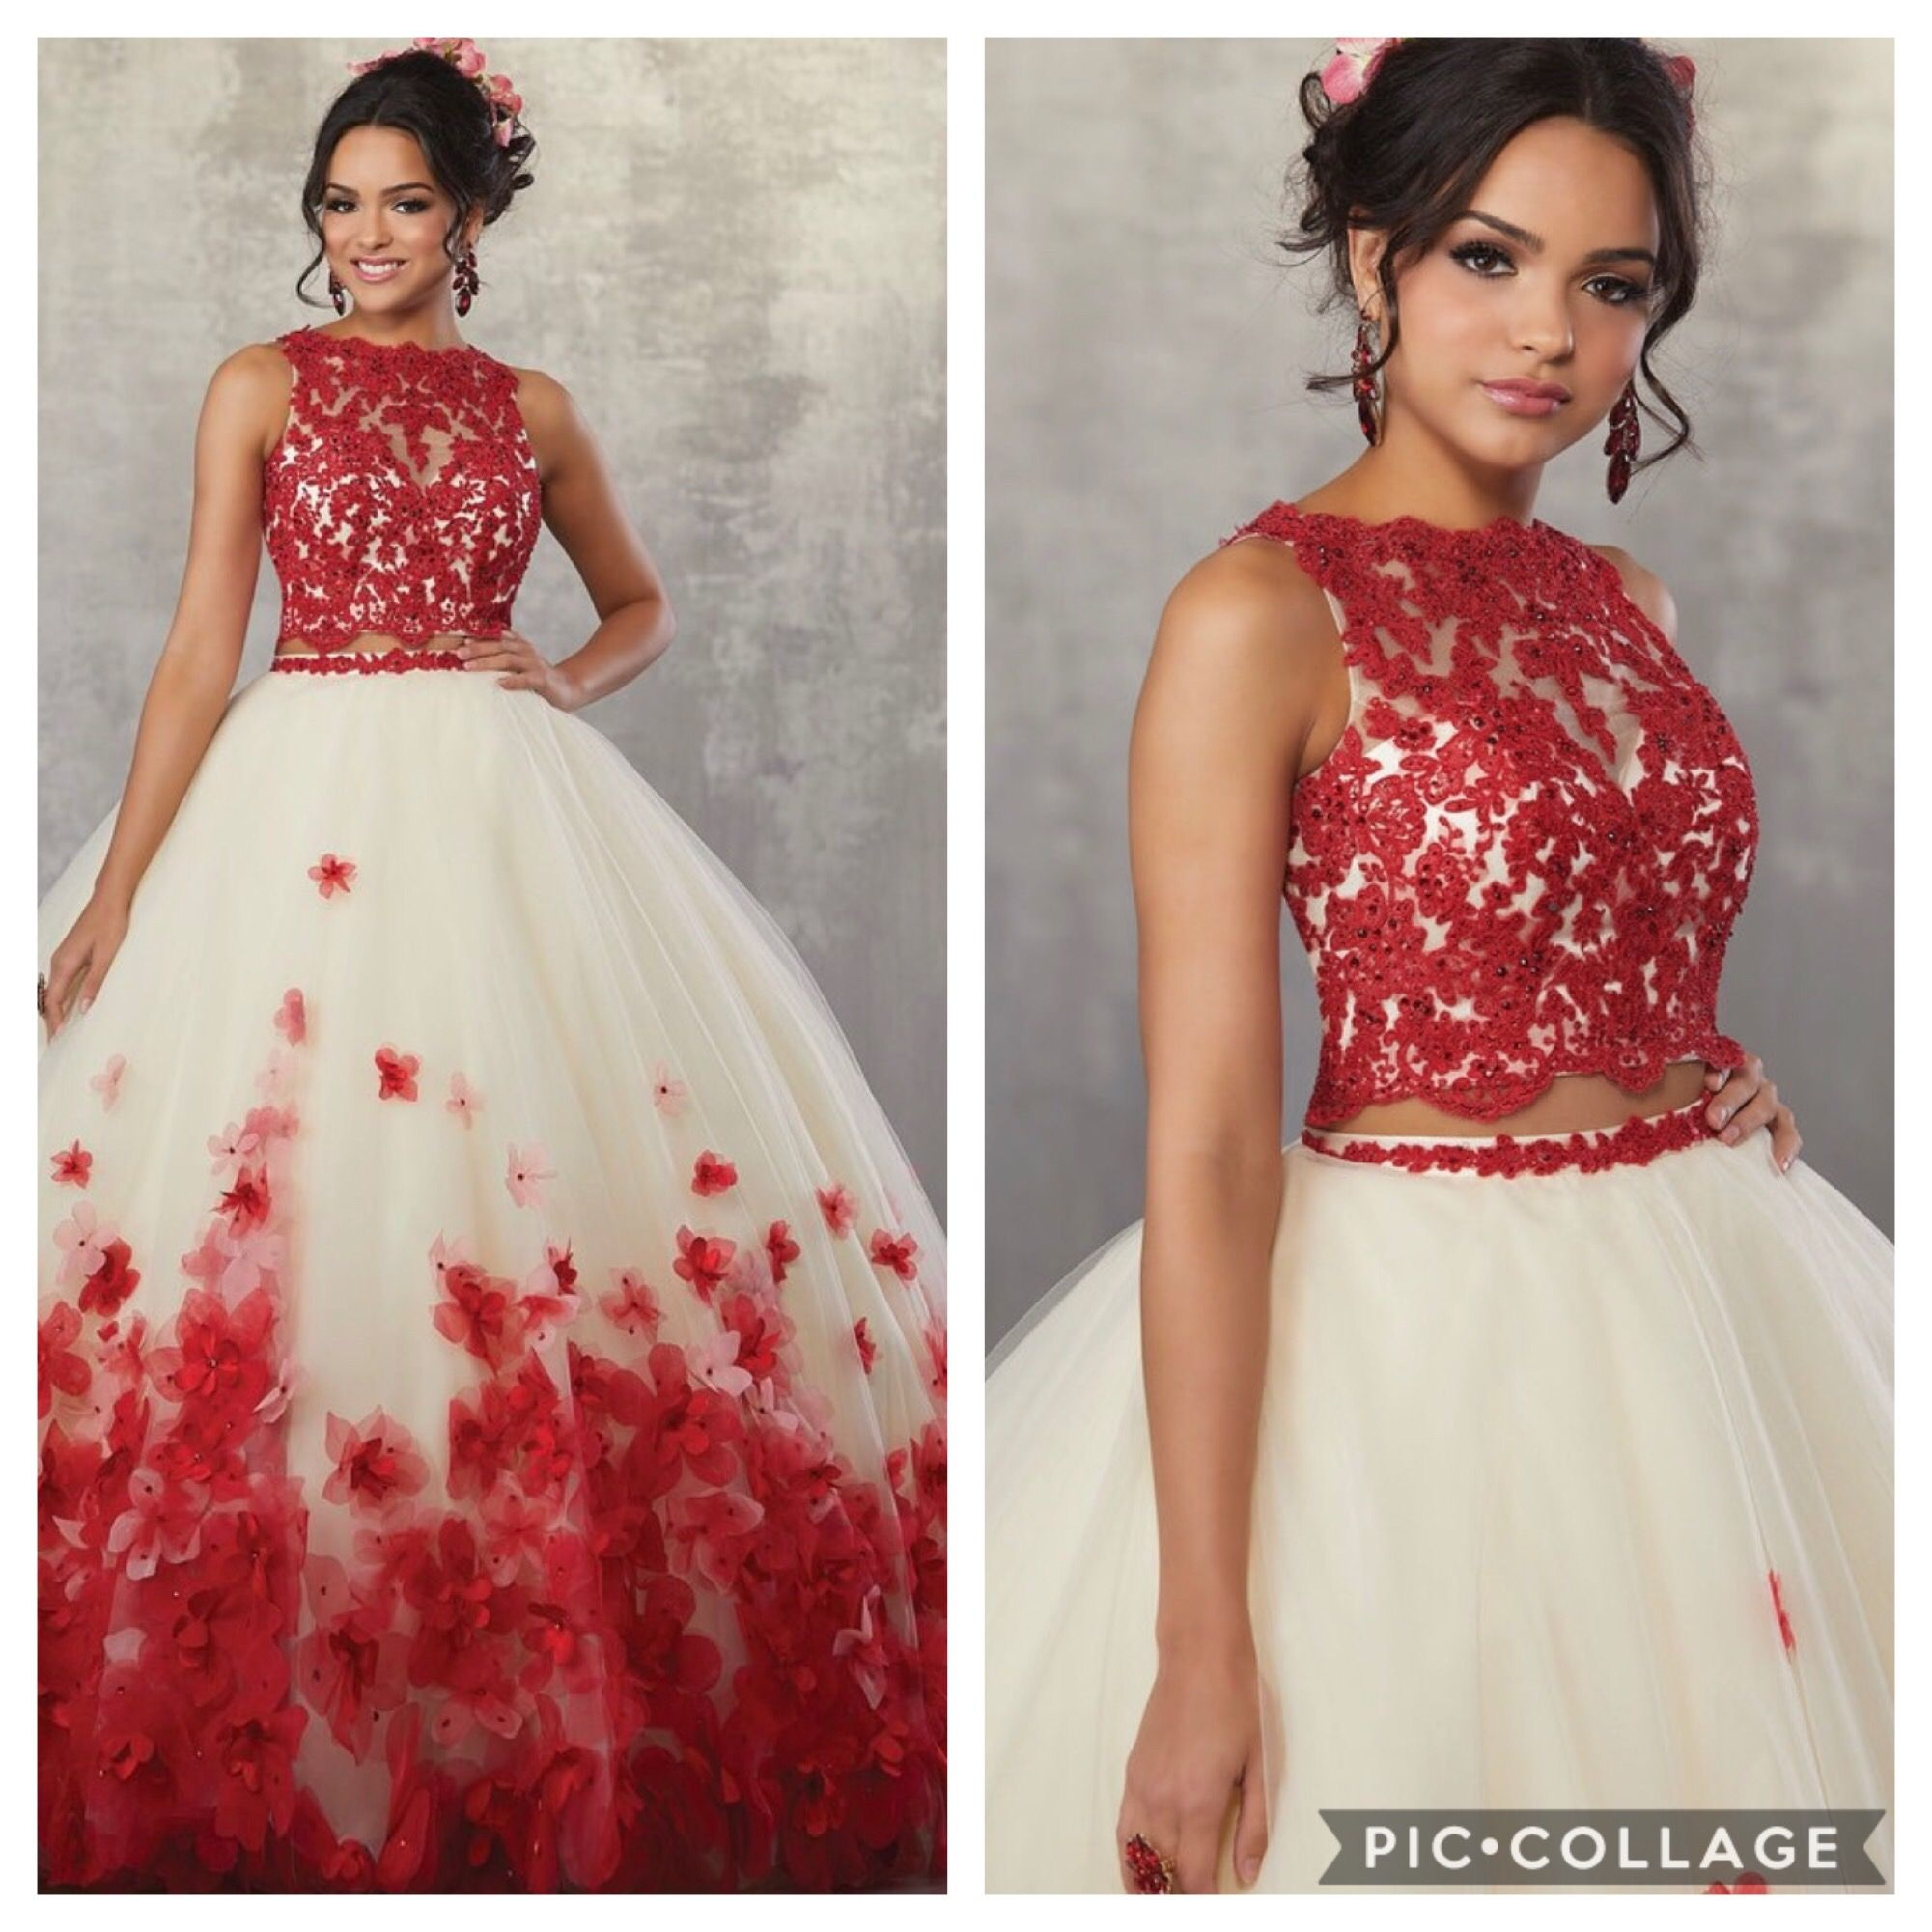 d51709b32ac09 Champagne/Red Two Piece Gown with beaded Lace on Net Top and Three ...